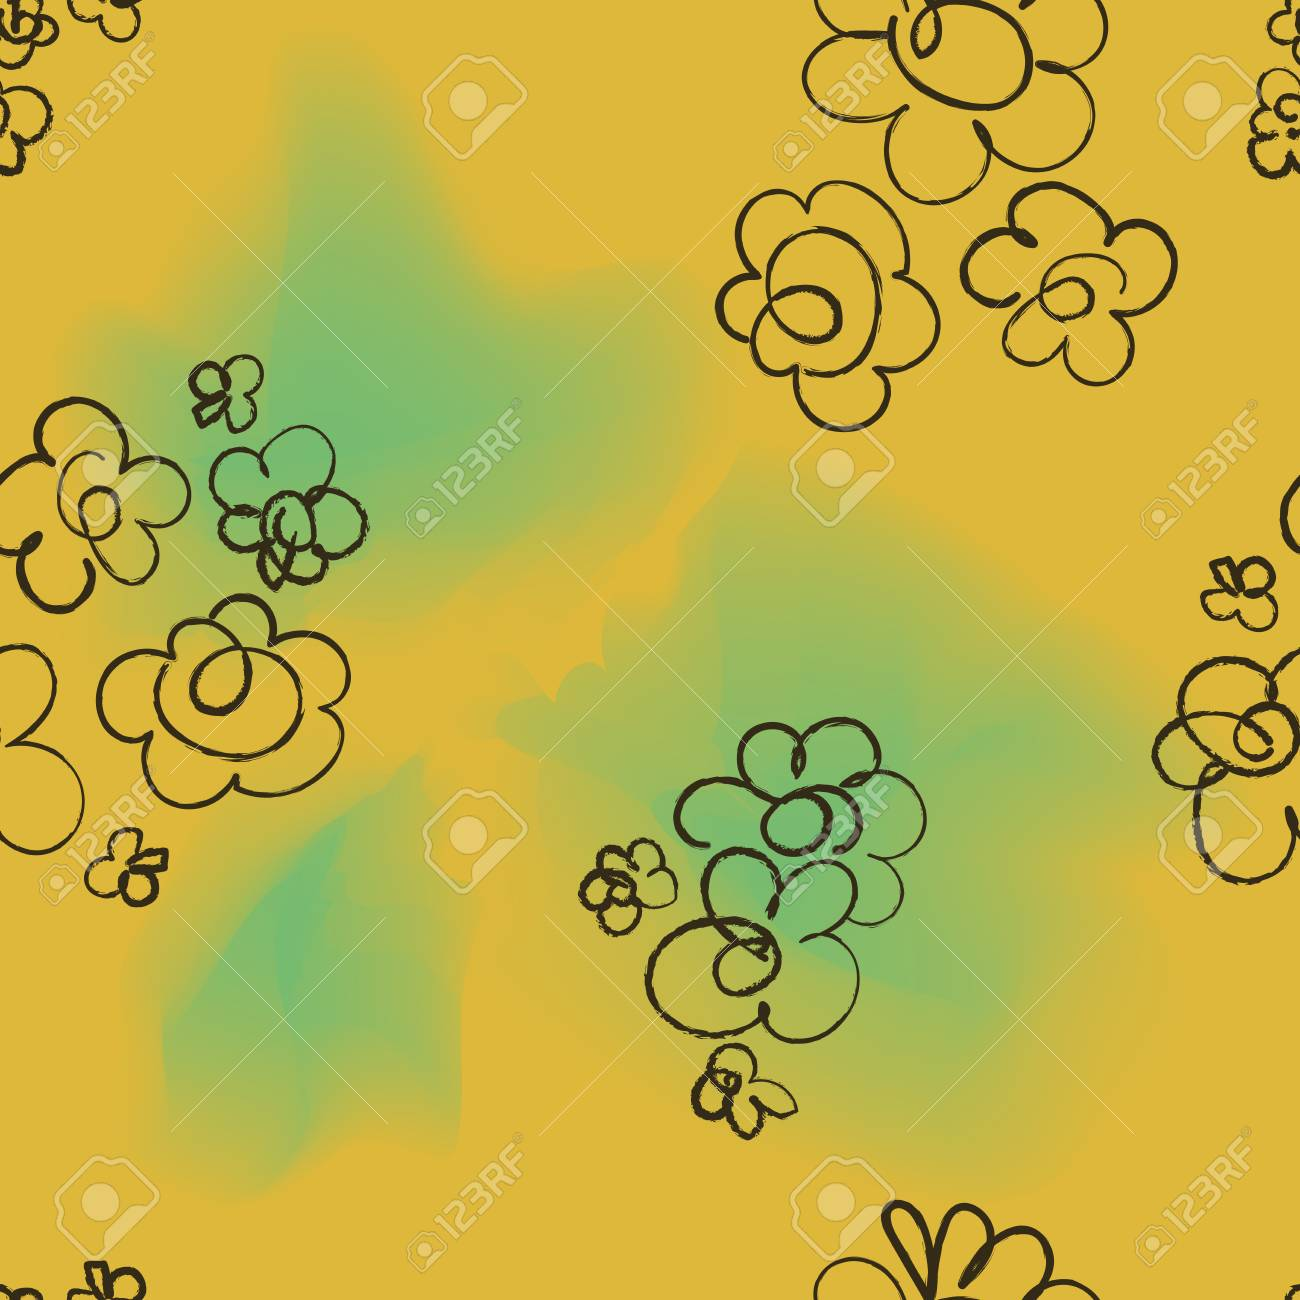 Trendy seamless floral watercolor ditsy pattern. Fabric design with simple flowers. Vector scandinavian repeated pattern for fabric, wallpaper or wrap paper. - 125051456